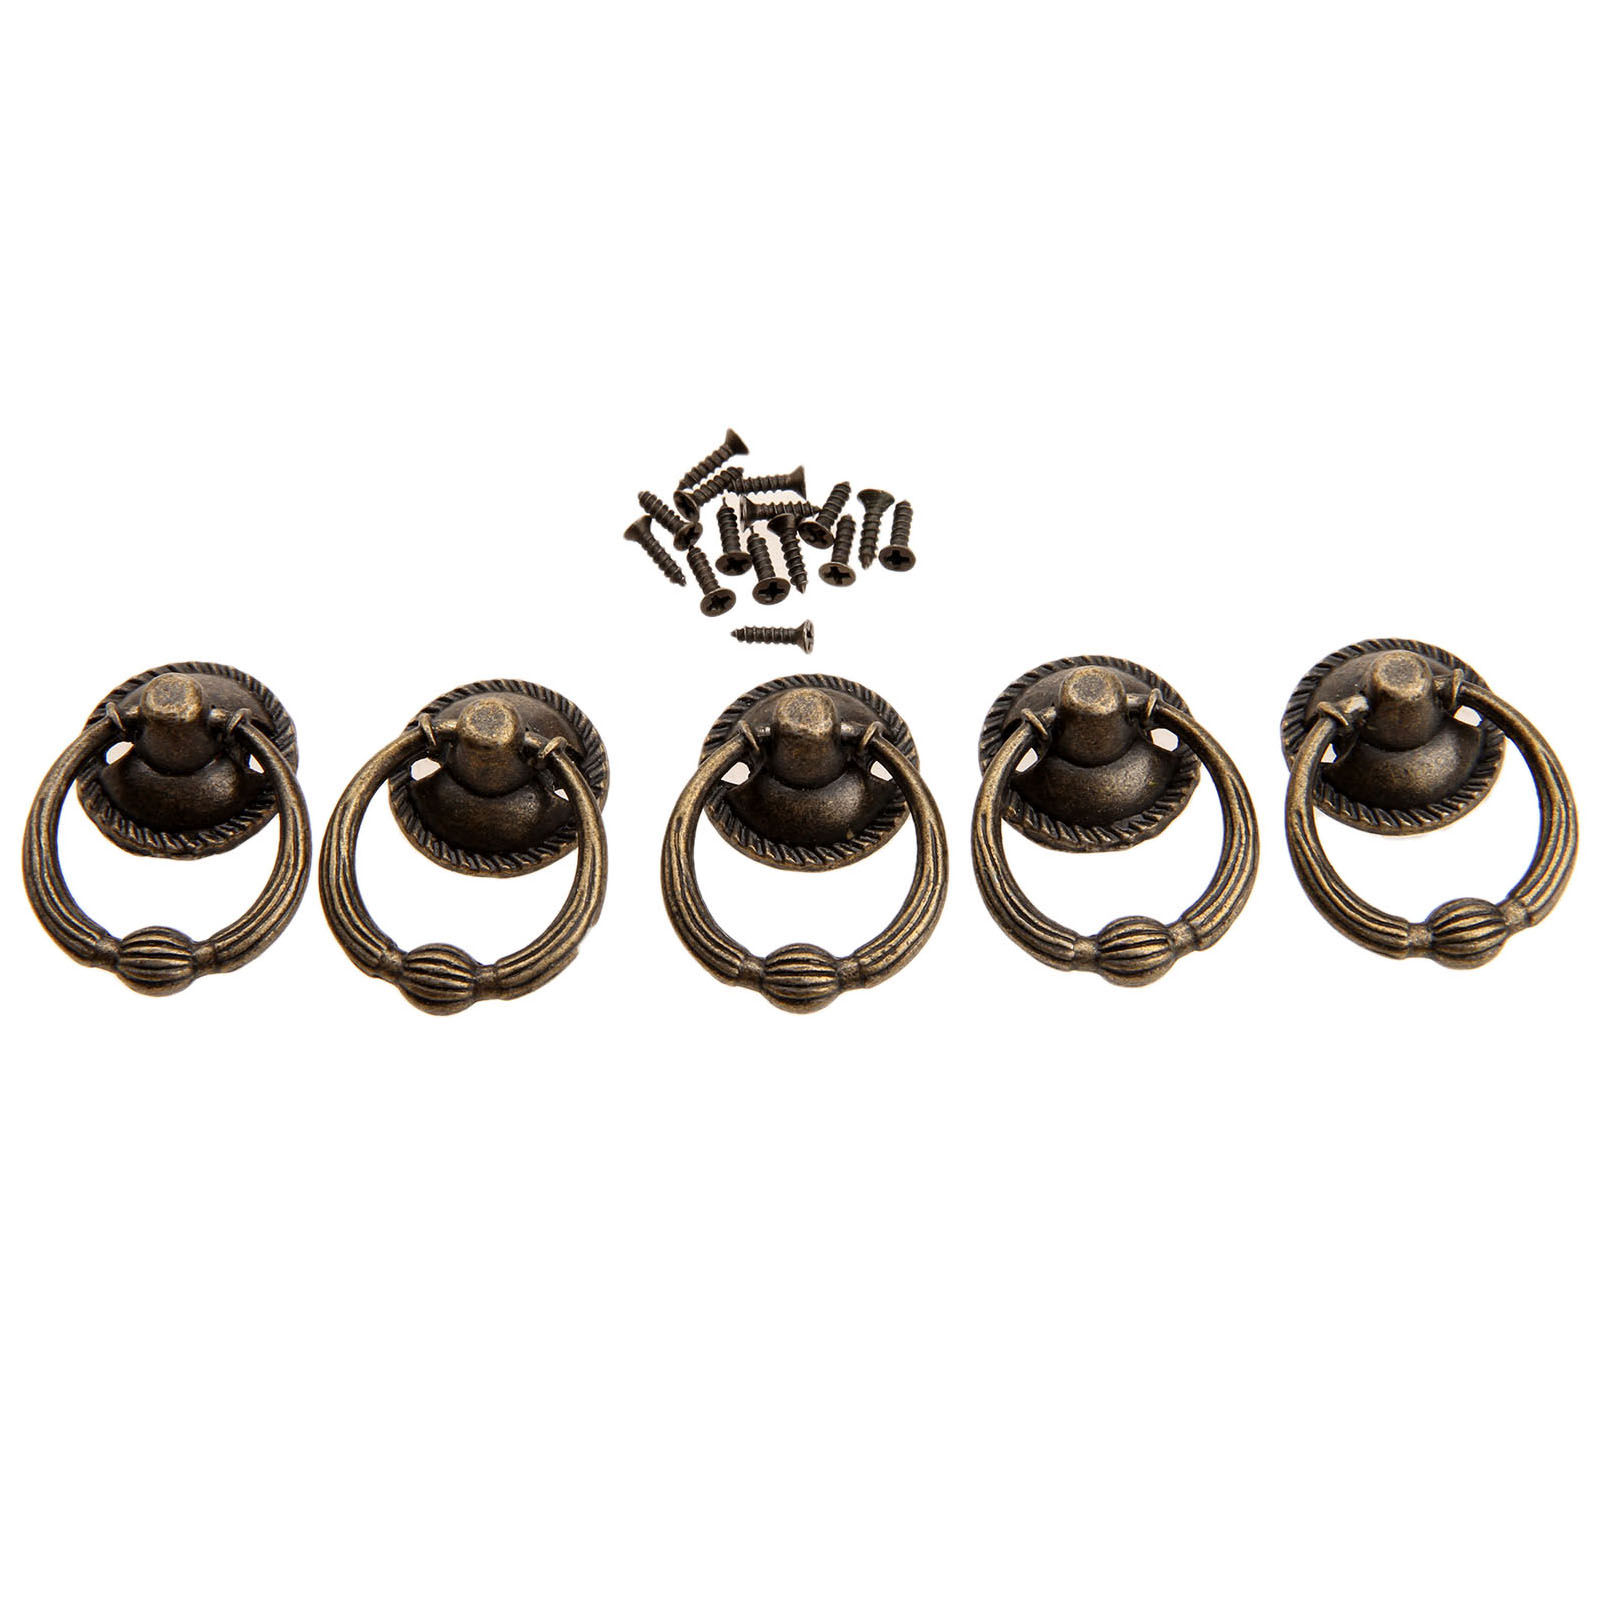 5Pcs 37x27mm Antique Bronze Furniture Knobs for Wood Box Kitchen Drawer Cabinet Door Handle Cupboard Brass Ring Pull Handles in Cabinet Pulls from Home Improvement